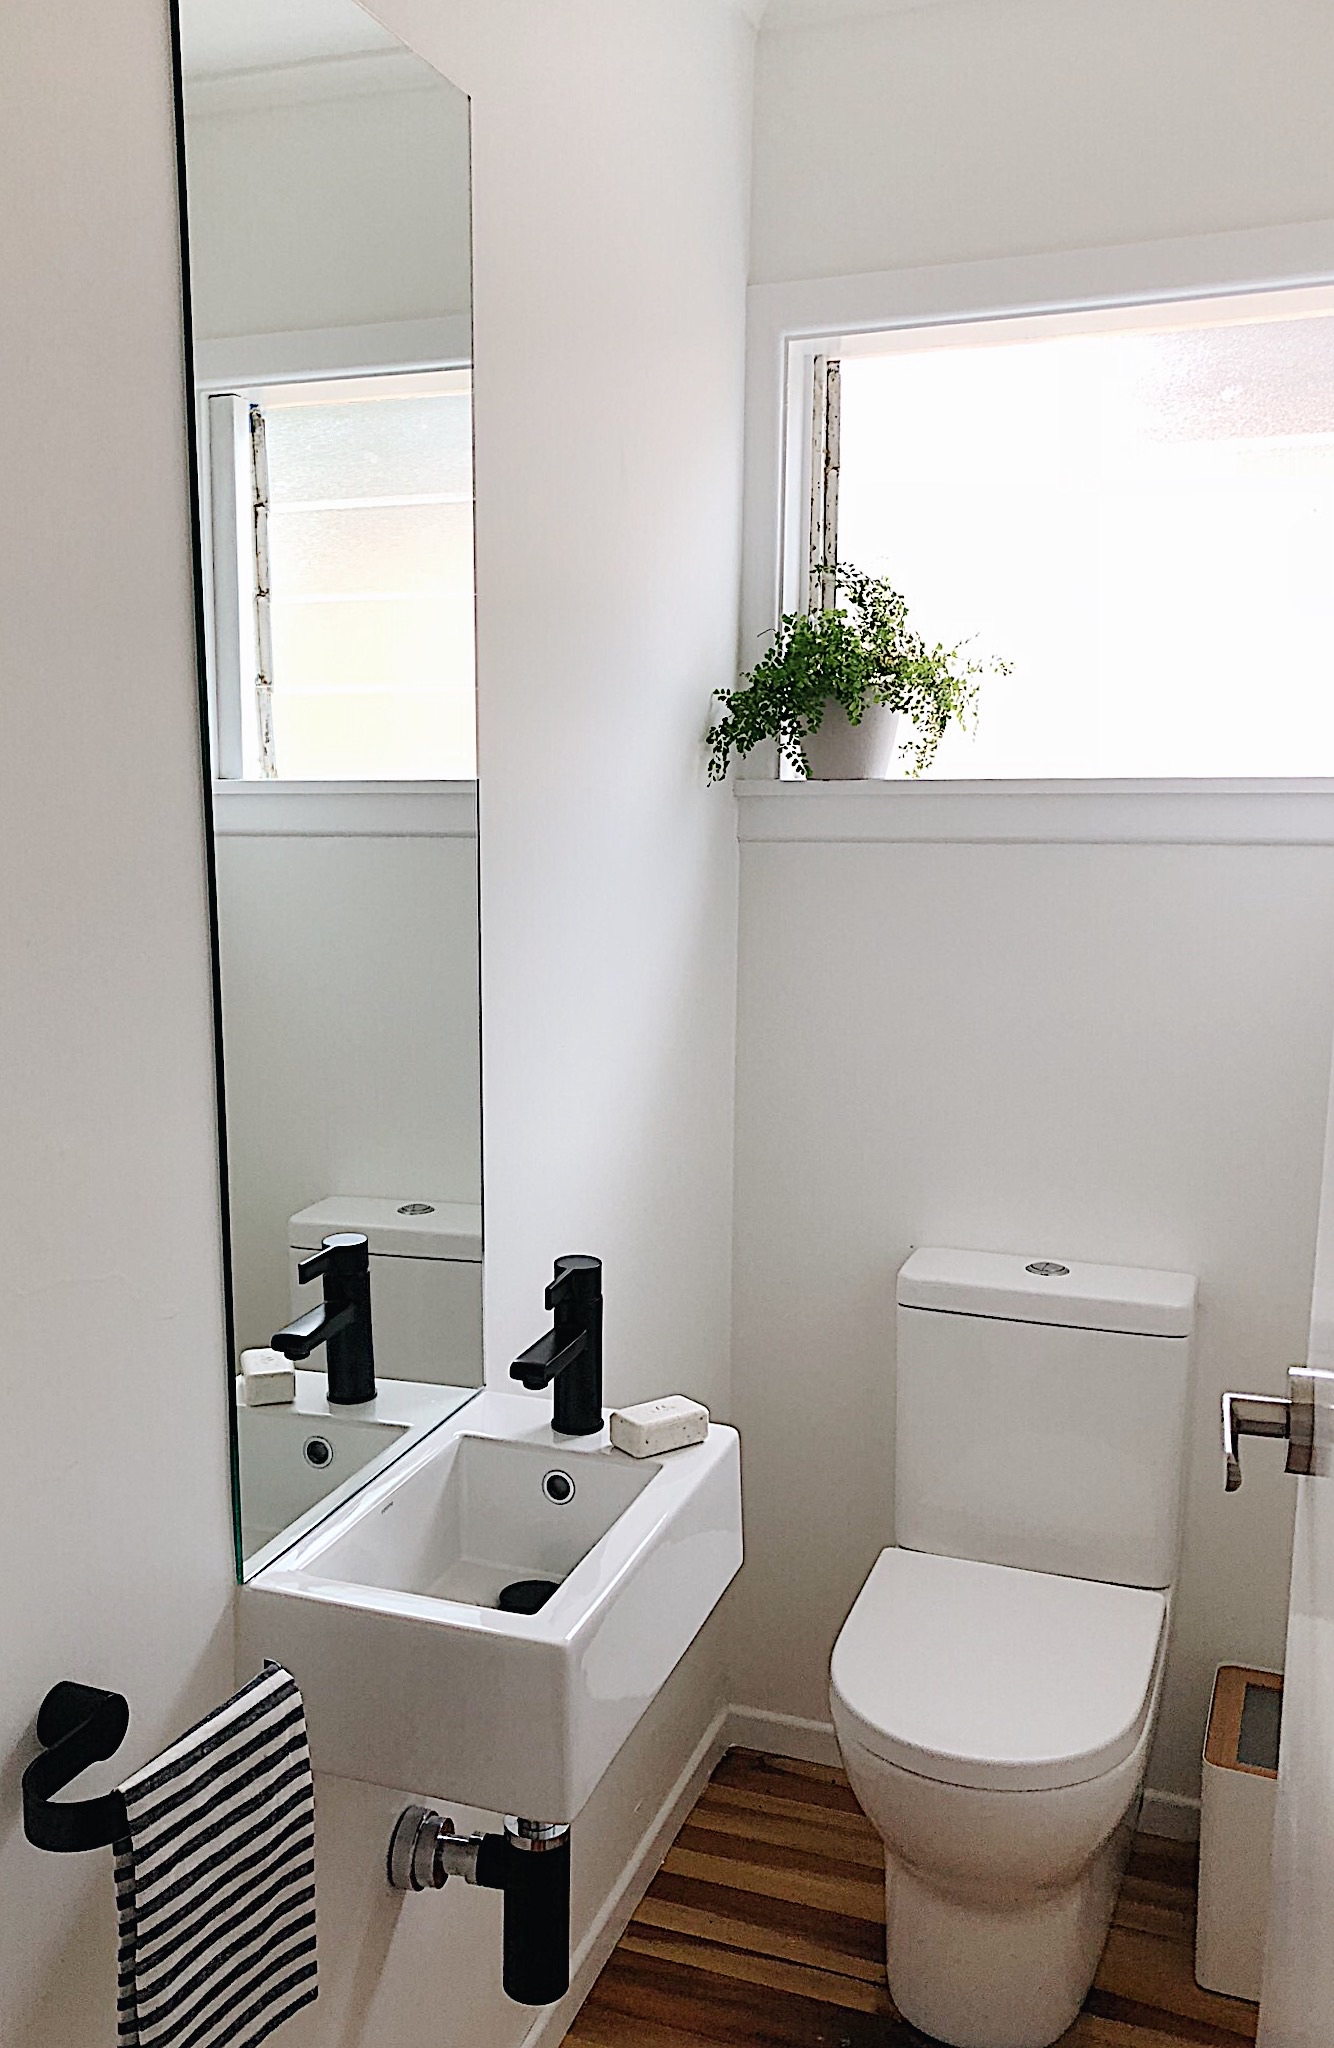 Pearson and Projects Relocatable Reno Bathroom Project Powder Room Toilet Caroma .jpg